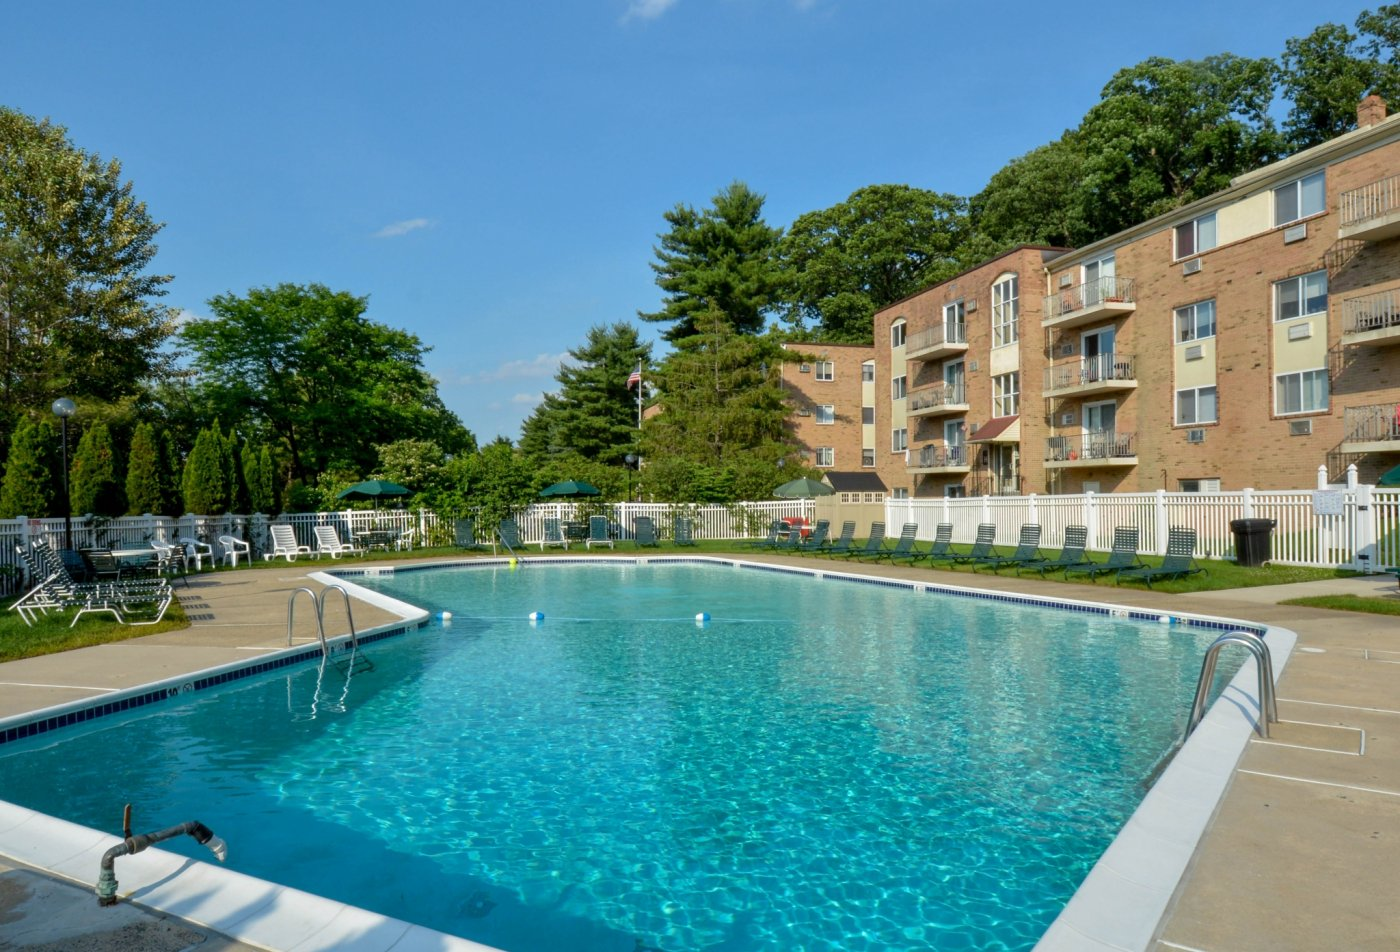 Swimming Pool | Apartment Homes in Secane, PA | Bishop Hill Apartments